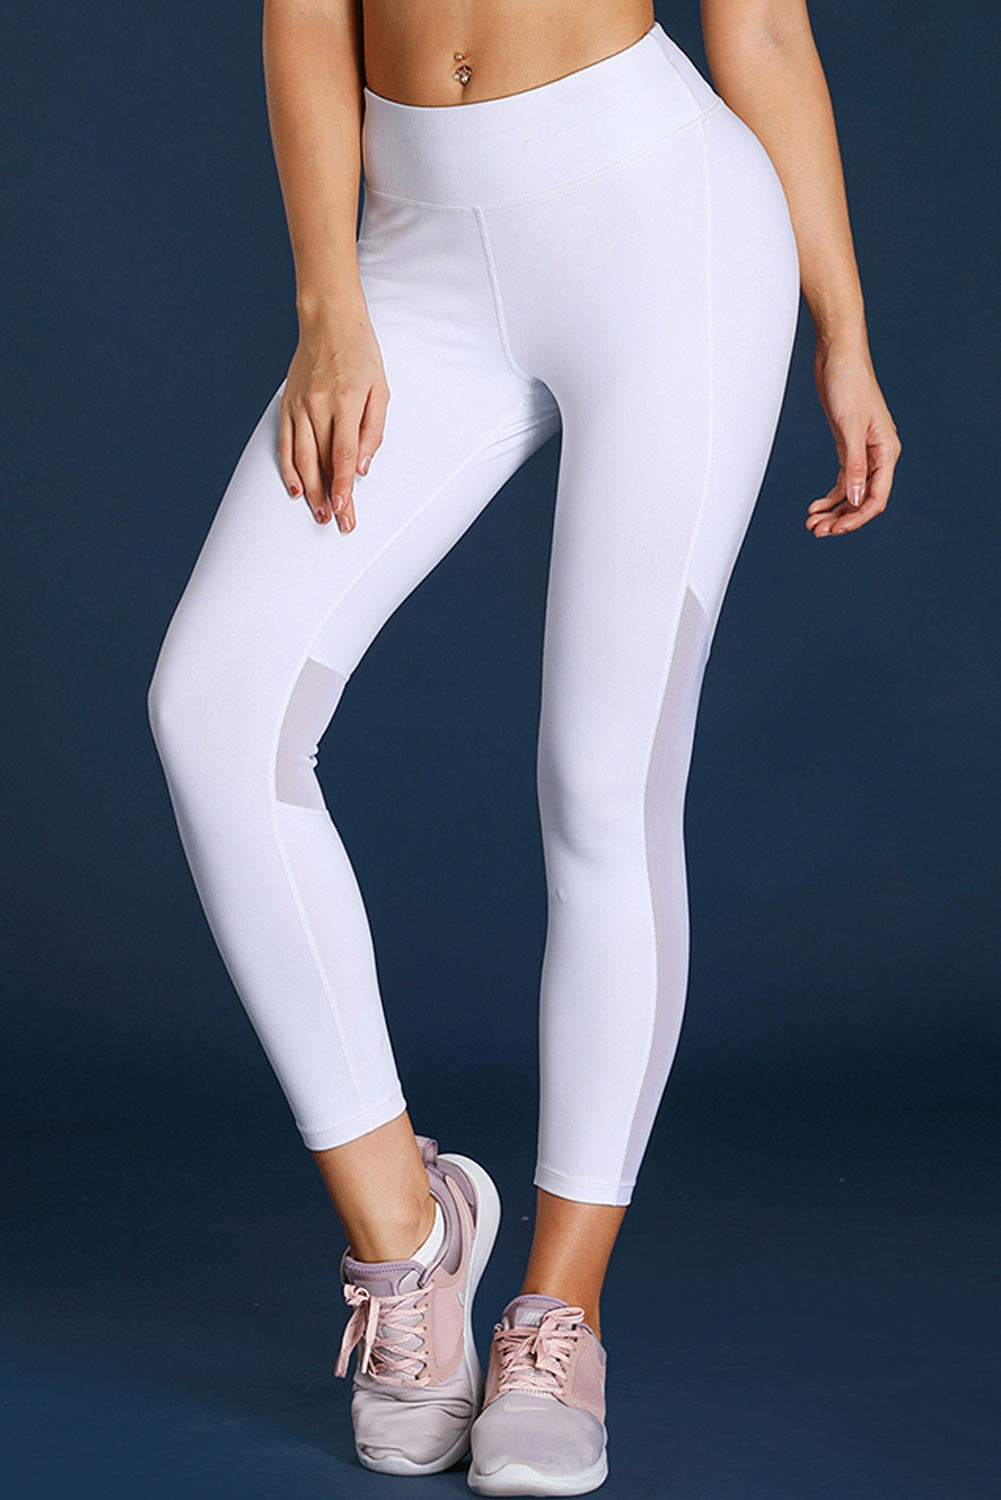 White High-Rise Mesh Patchwork Gym Sport Yoga Leggings